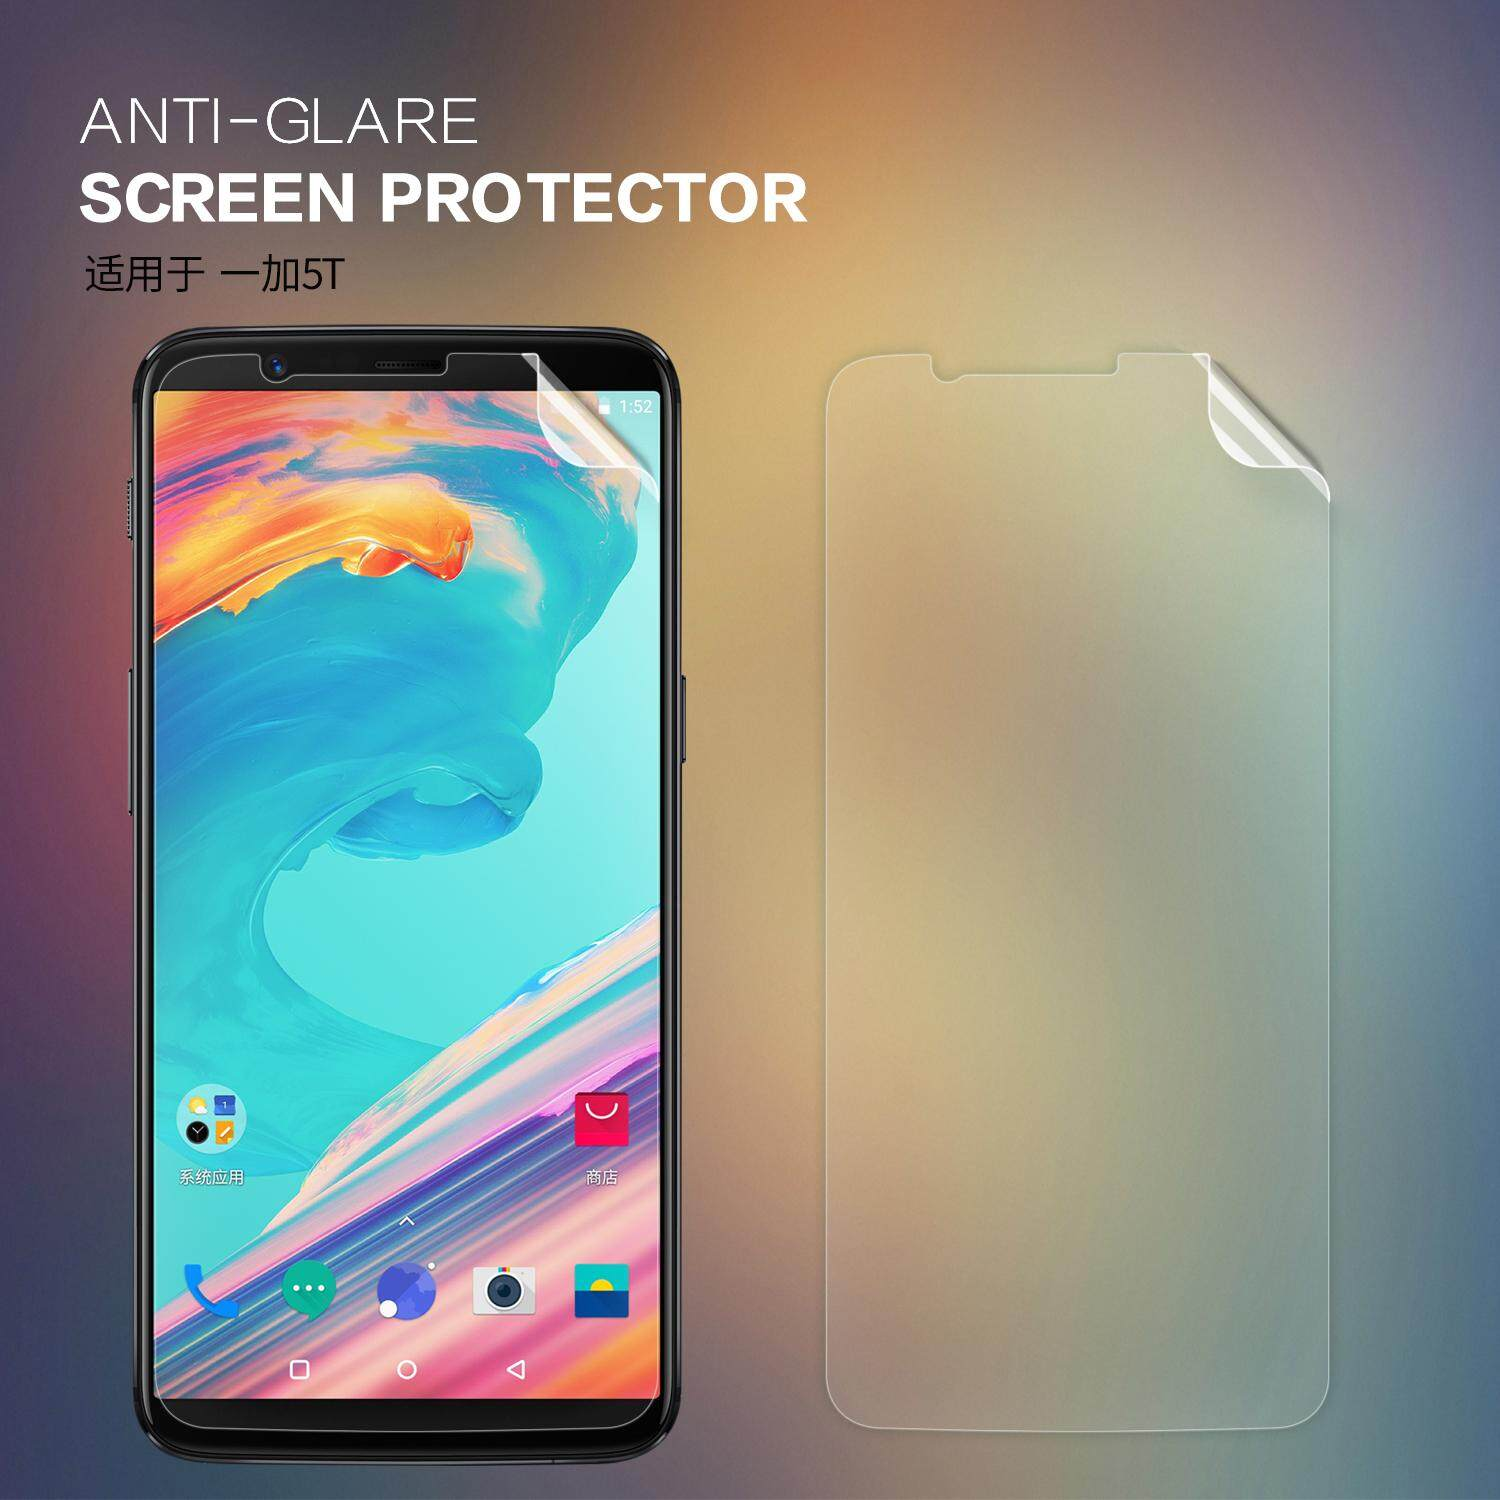 Nillkin Buy At Best Price In Malaysia Silikon Soft Case Samsung Galaxy S8 Plus Nature Ultrathin Original 2 Pcs Lot Screen Protector For Oneplus 5t Matte Film Scratch Resistant Frosted